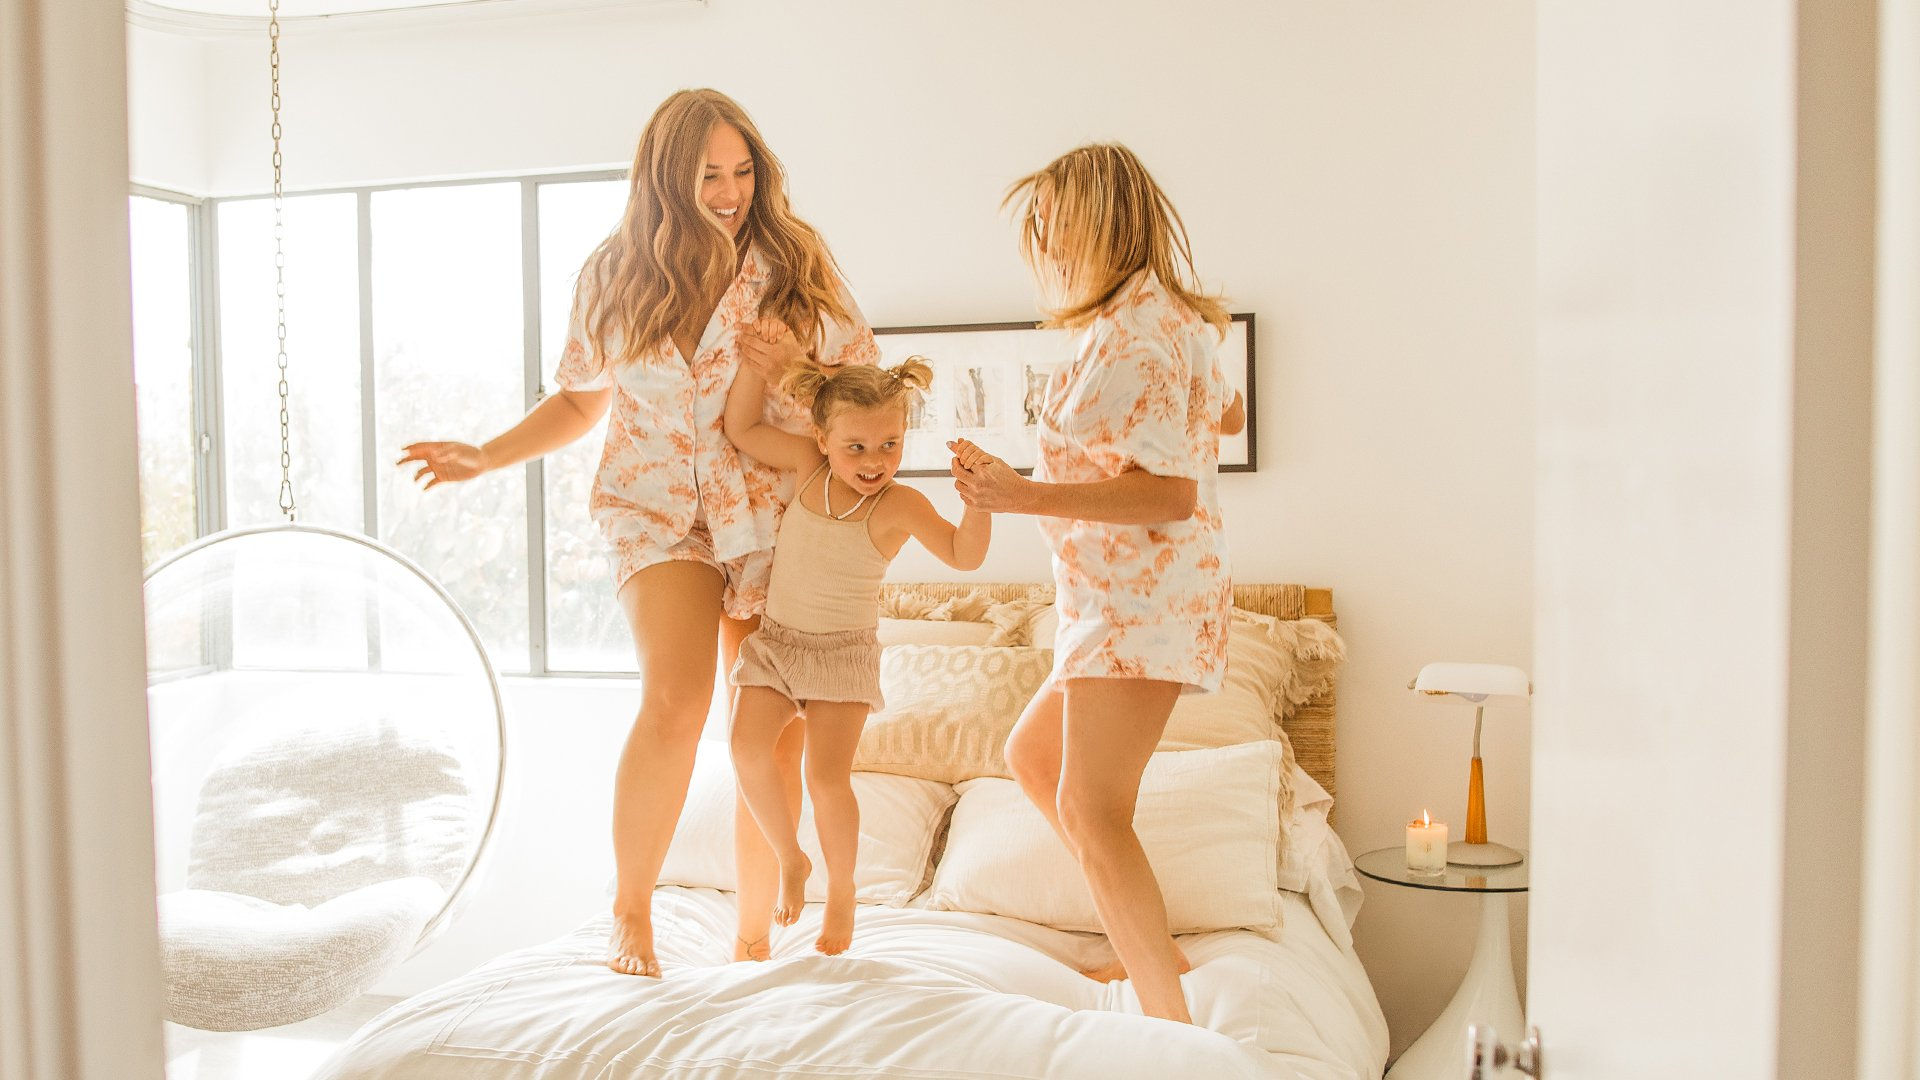 woman jumping on a bed with a child